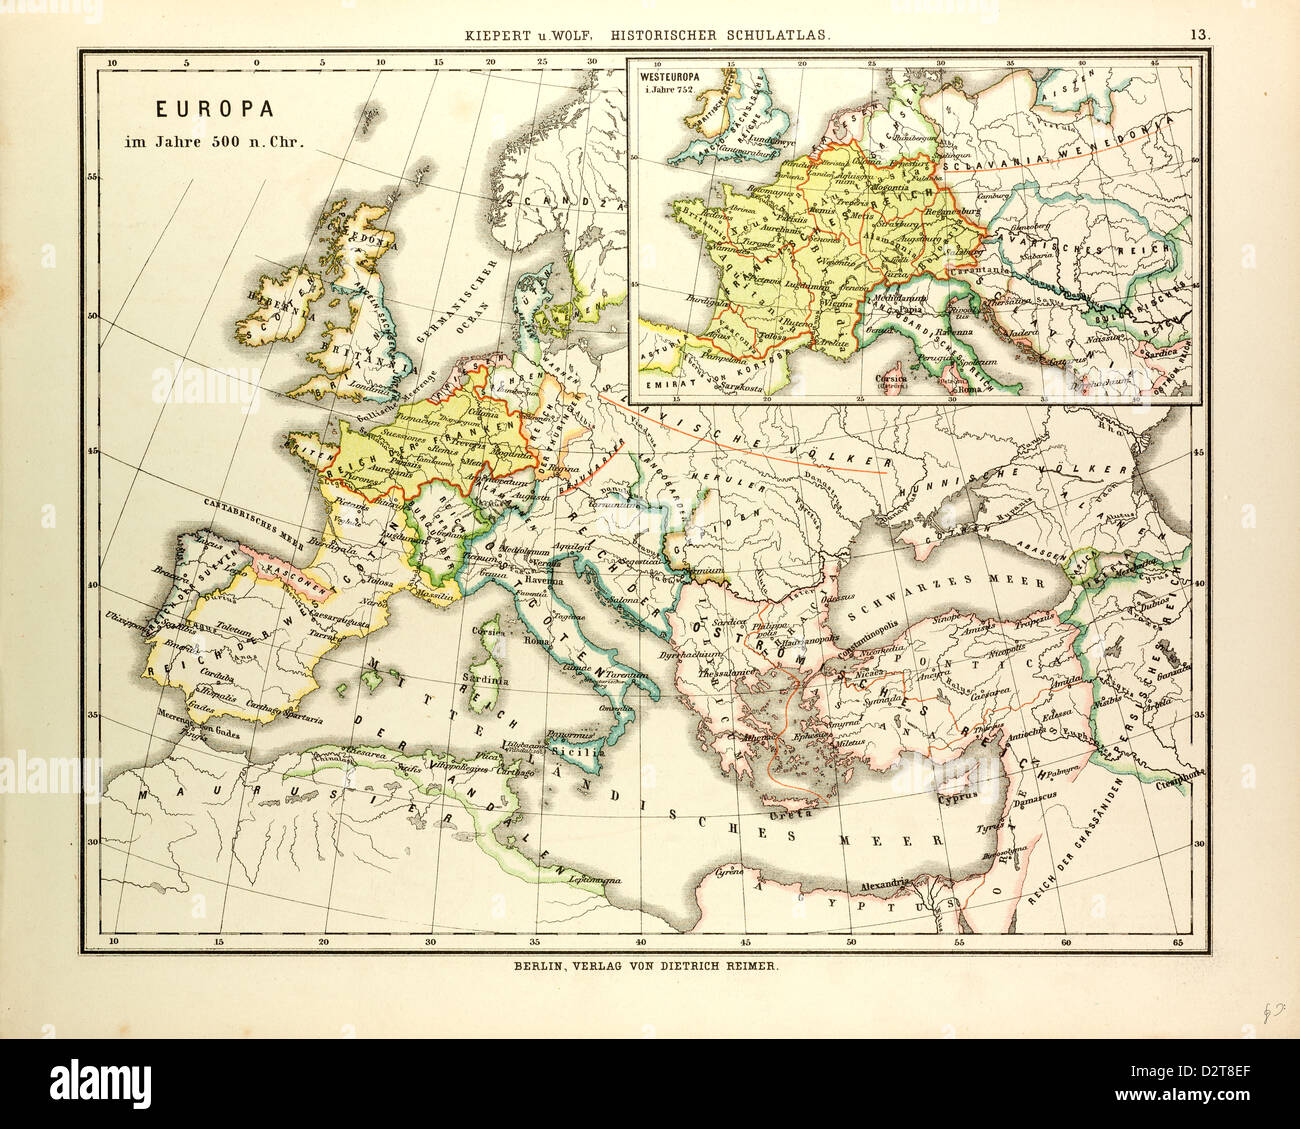 Map Of Europe In 500 A D Stock Photo 53393943 Alamy